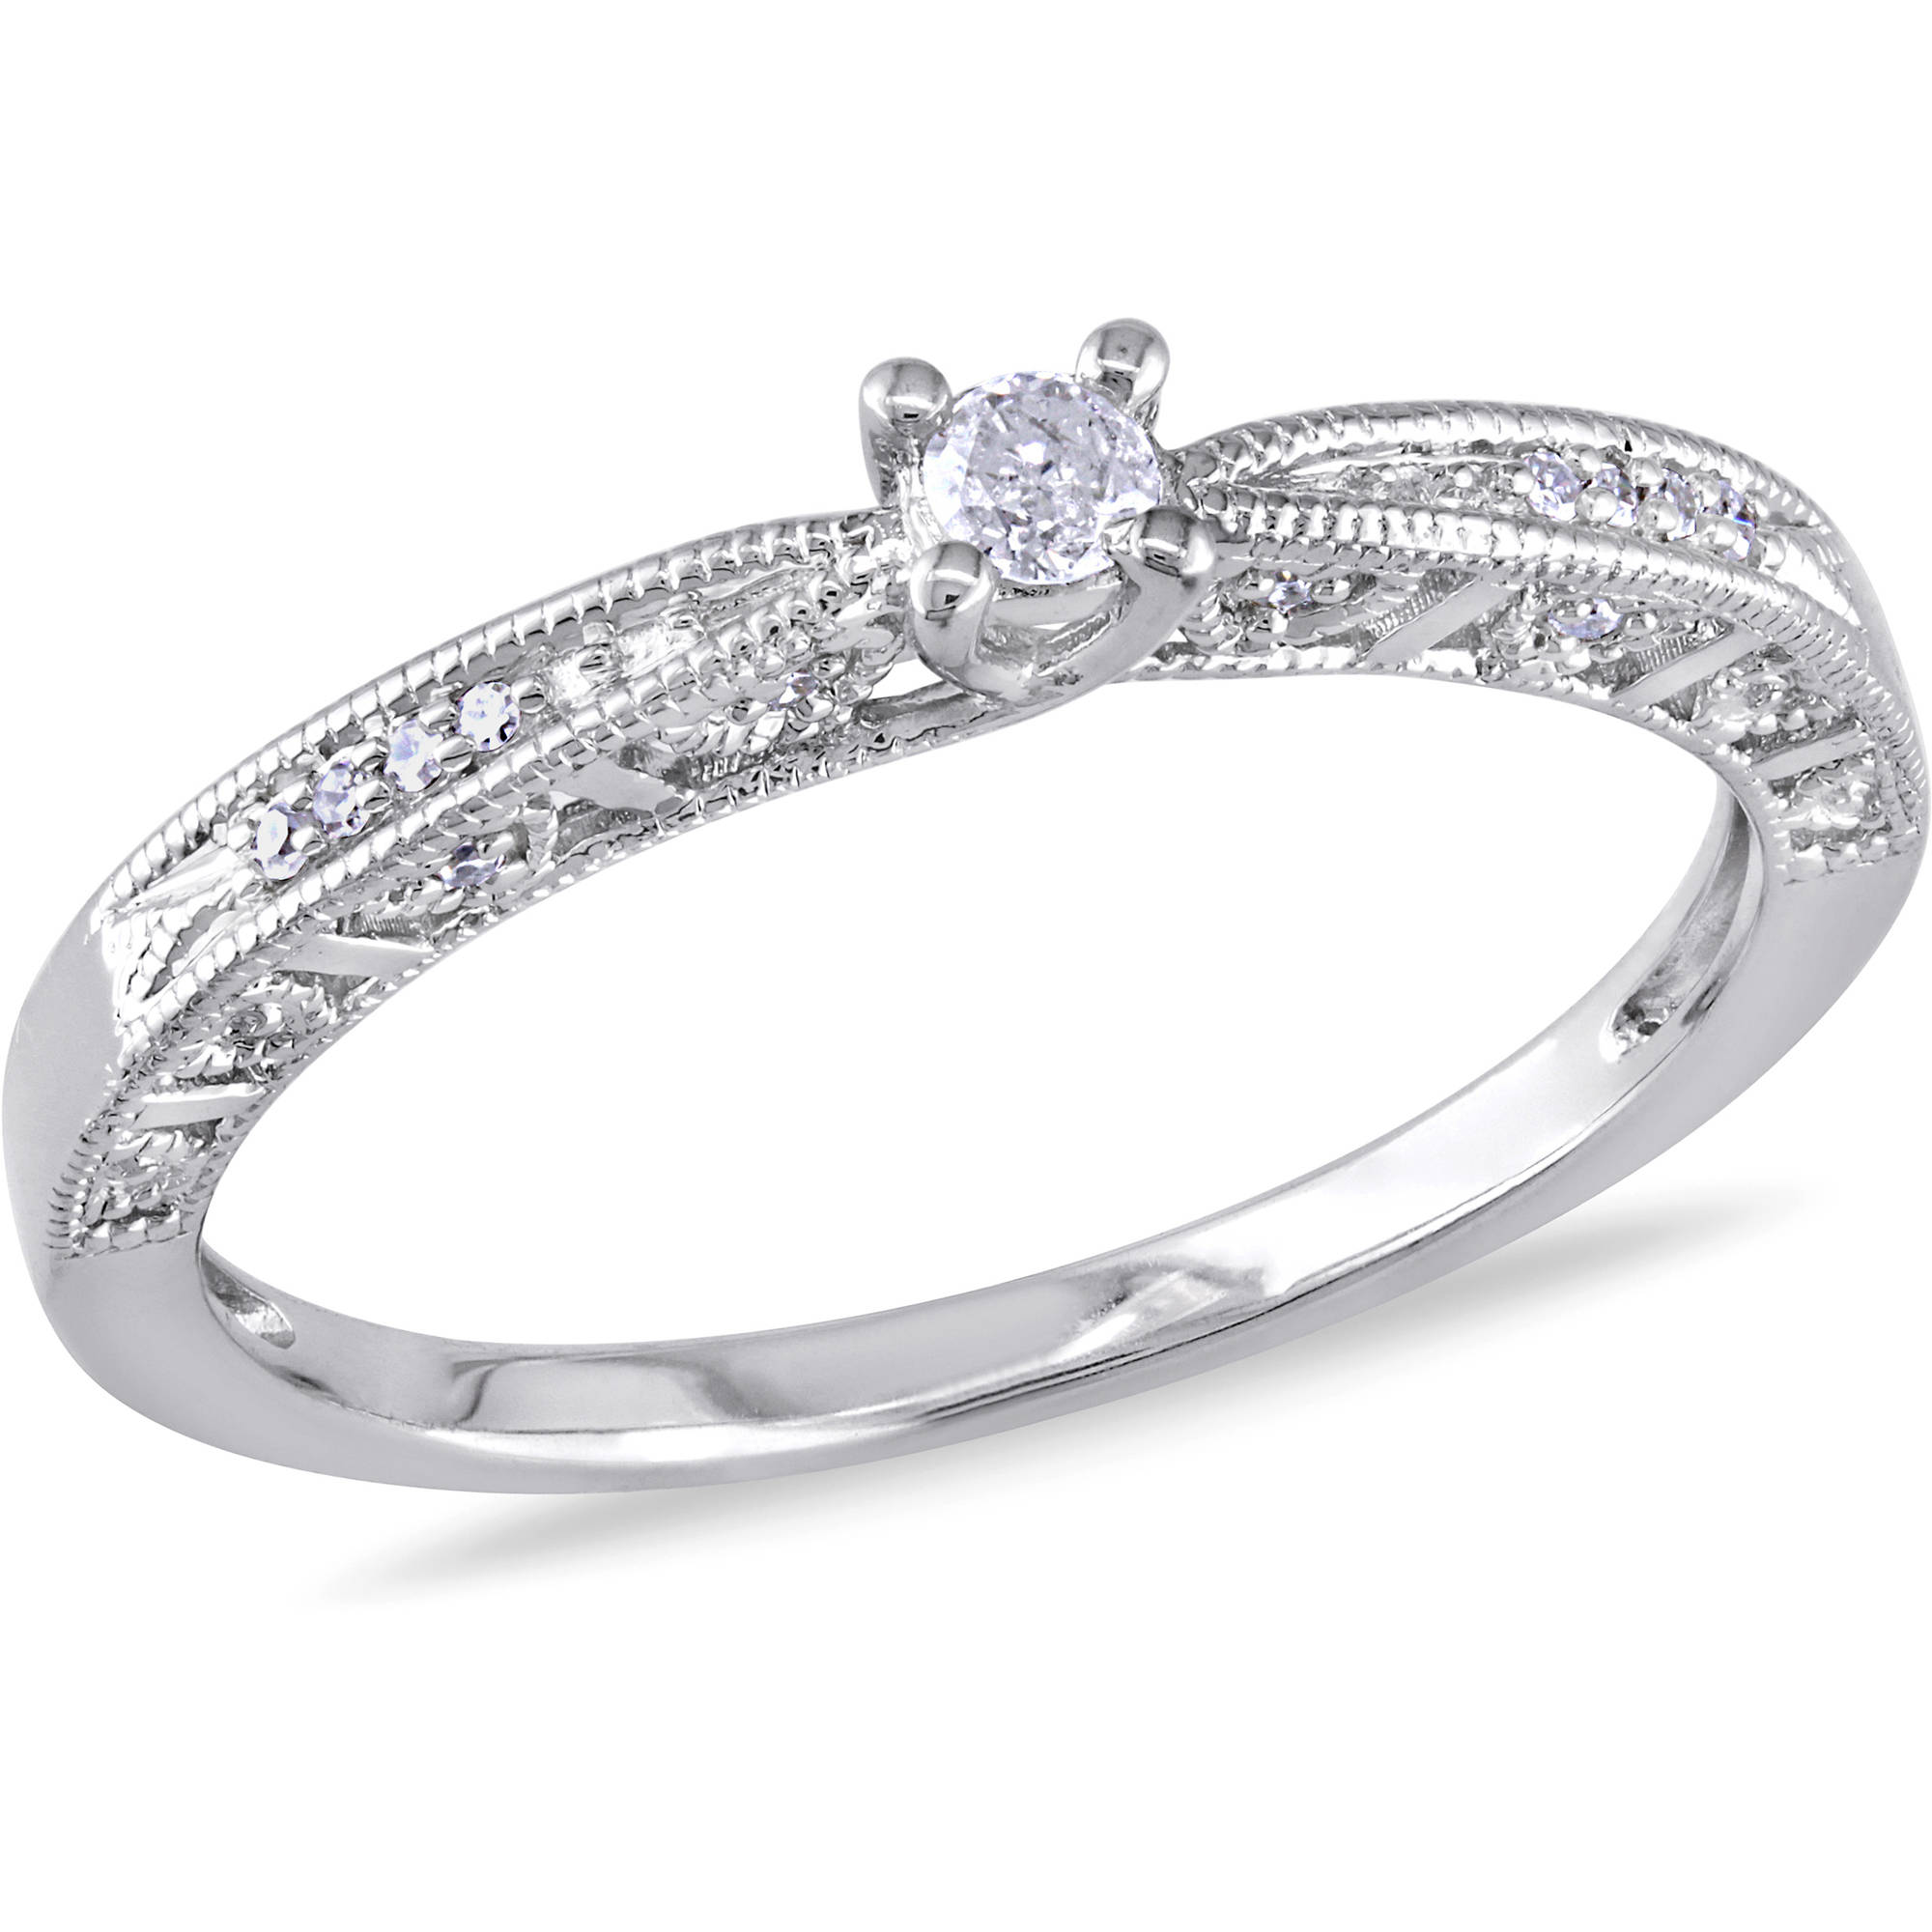 Miabella 1/10 Carat T.W. Diamond Sterling Silver Engagement Ring